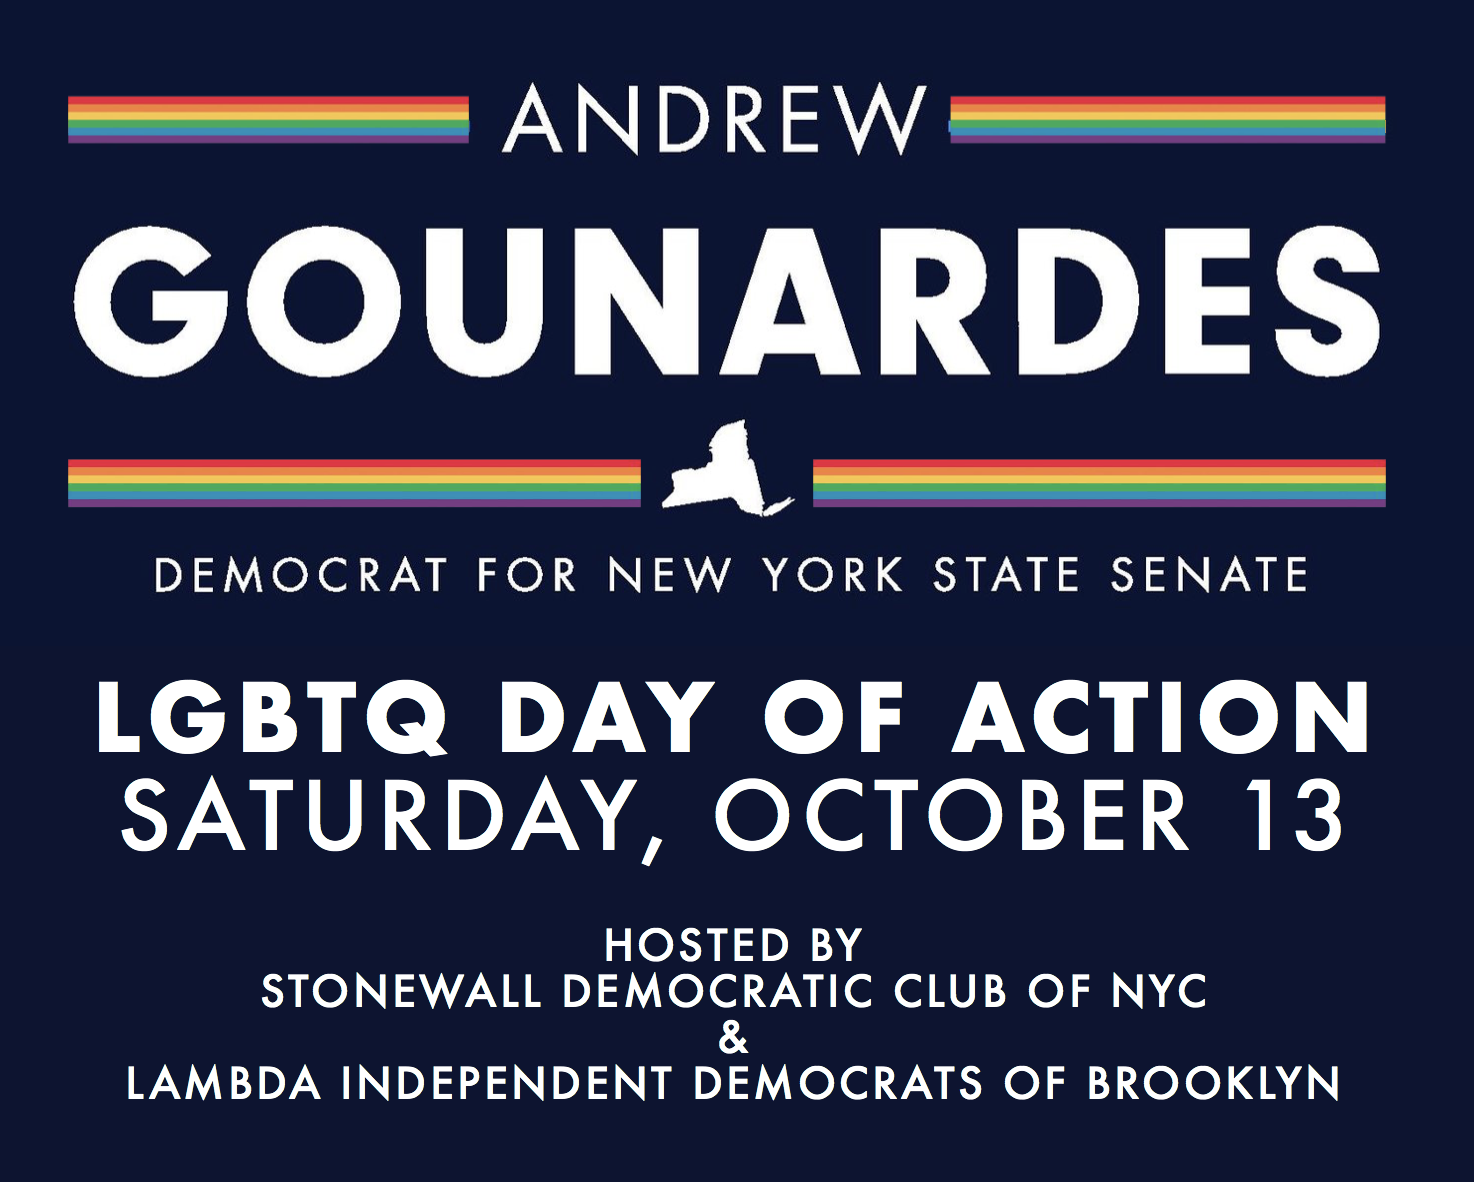 Join SDNYC and Lambda Independent Democrats of Brooklyn to flip the NY Senate blue in Bay Ridge!  What's at stake: LGBTQ youth suffer an increased rate of suicide and homelessness due to bullying and conversion therapy, while Transgender New Yorkers lack basic protection from employment discrimination - all because the Republican-controlled New York State Senate won't pass common-sense human rights laws to protect the most vulnerable in our community and in disadvantaged communities across New York.   This race in south Brooklyn is the keystone to cementing a Democrat-controlled Senate and securing passage of these long-overdue protections. Currently represented by a homophobic Republican, this beautiful neighborhood is ready and primed to FLIP IT BLUE!   LGBTQ DAY OF ACTION: SATURDAY, October 13    11 AM Brunch:  Cebu Bar & Bistro 8801 Third Avenue Bay Ridge, NY 11209   12:30 Canvass:  311 86TH Street, Brooklyn, NY, 11209  Both venues are convenient to both Subway and Ferry.  RSVP: